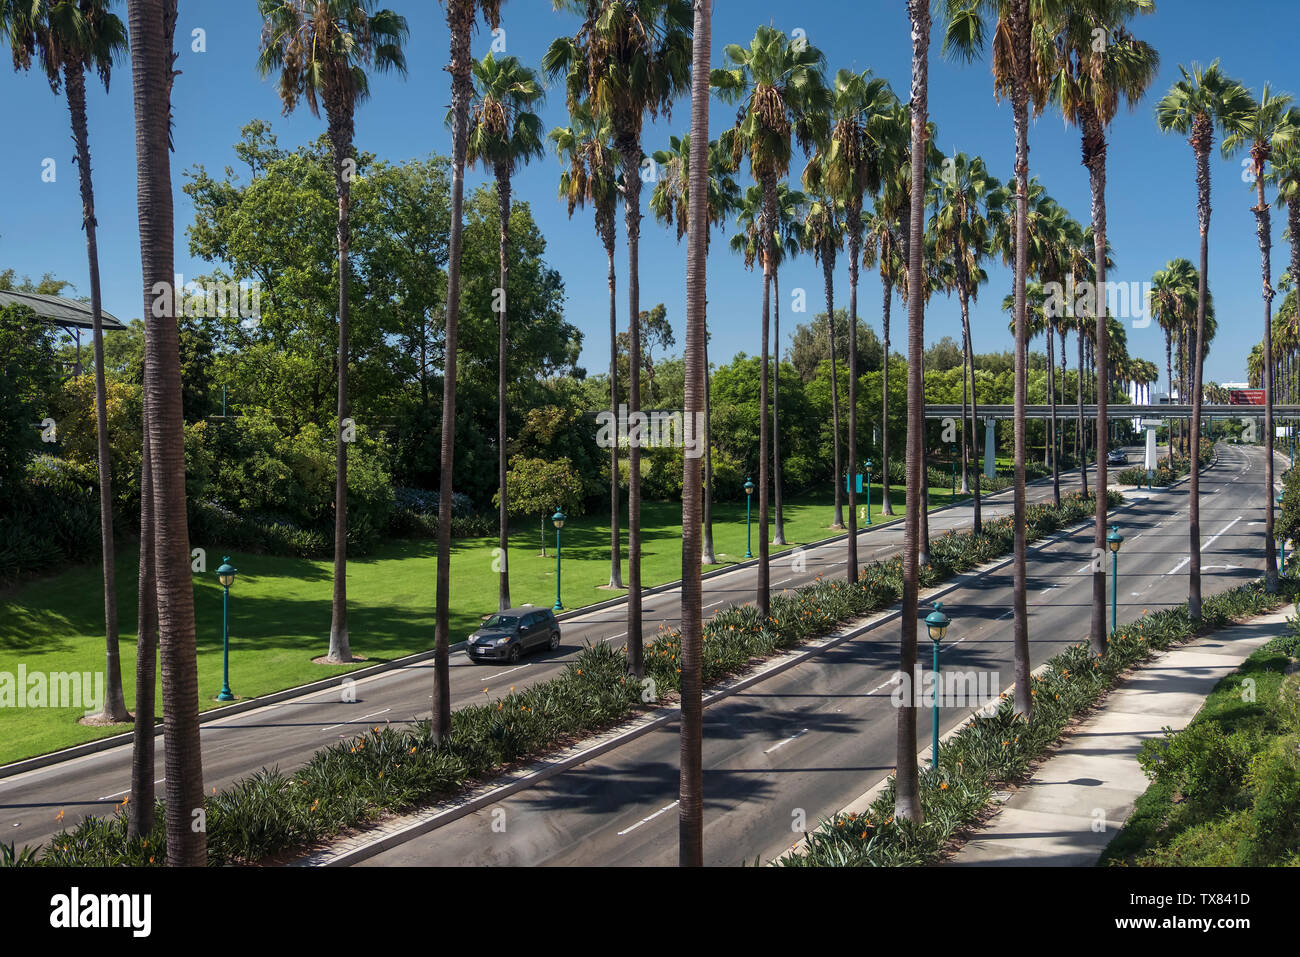 Typical Palm Tree Fringed Highway, Anaheim, Los Angeles, California, USA Stock Photo